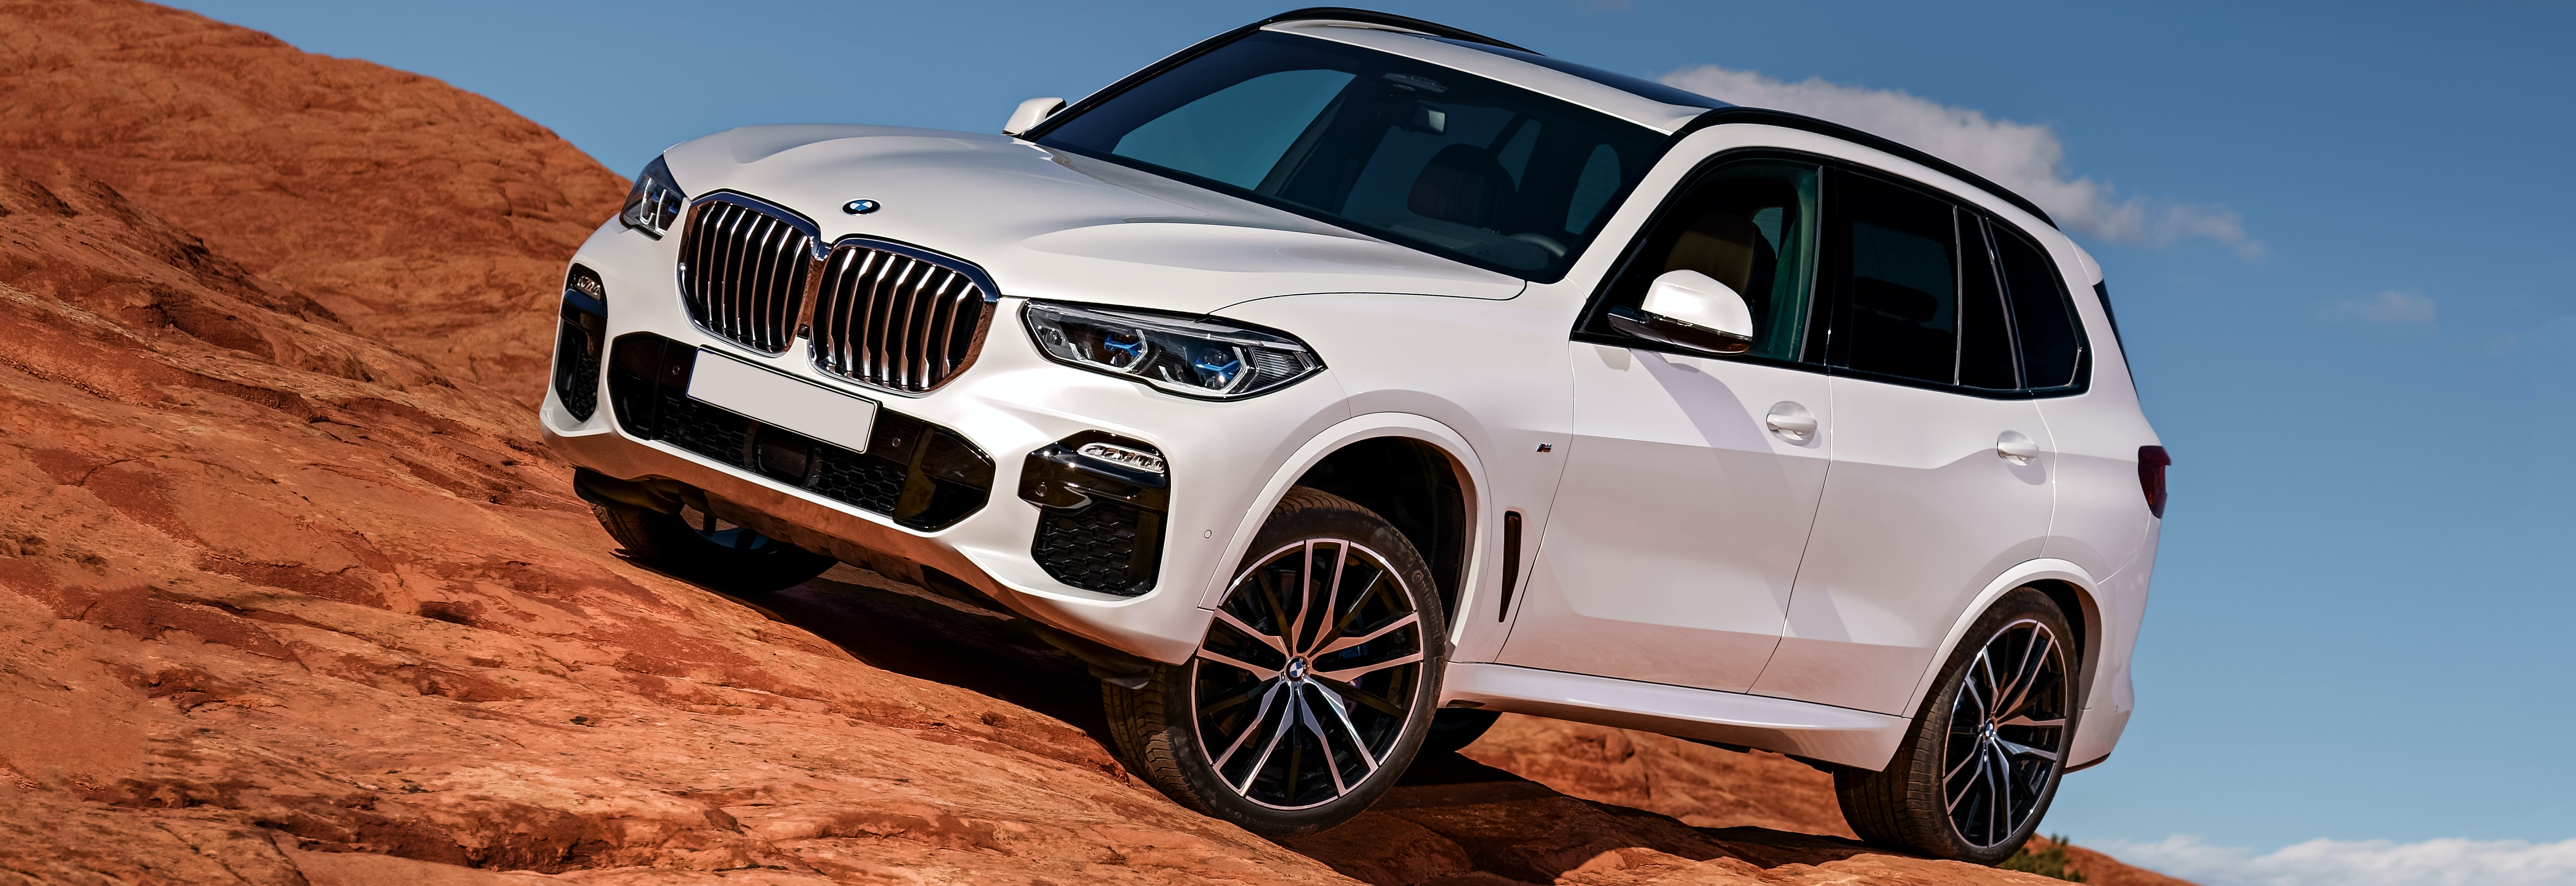 2019 Bmw X5 White Parked Front